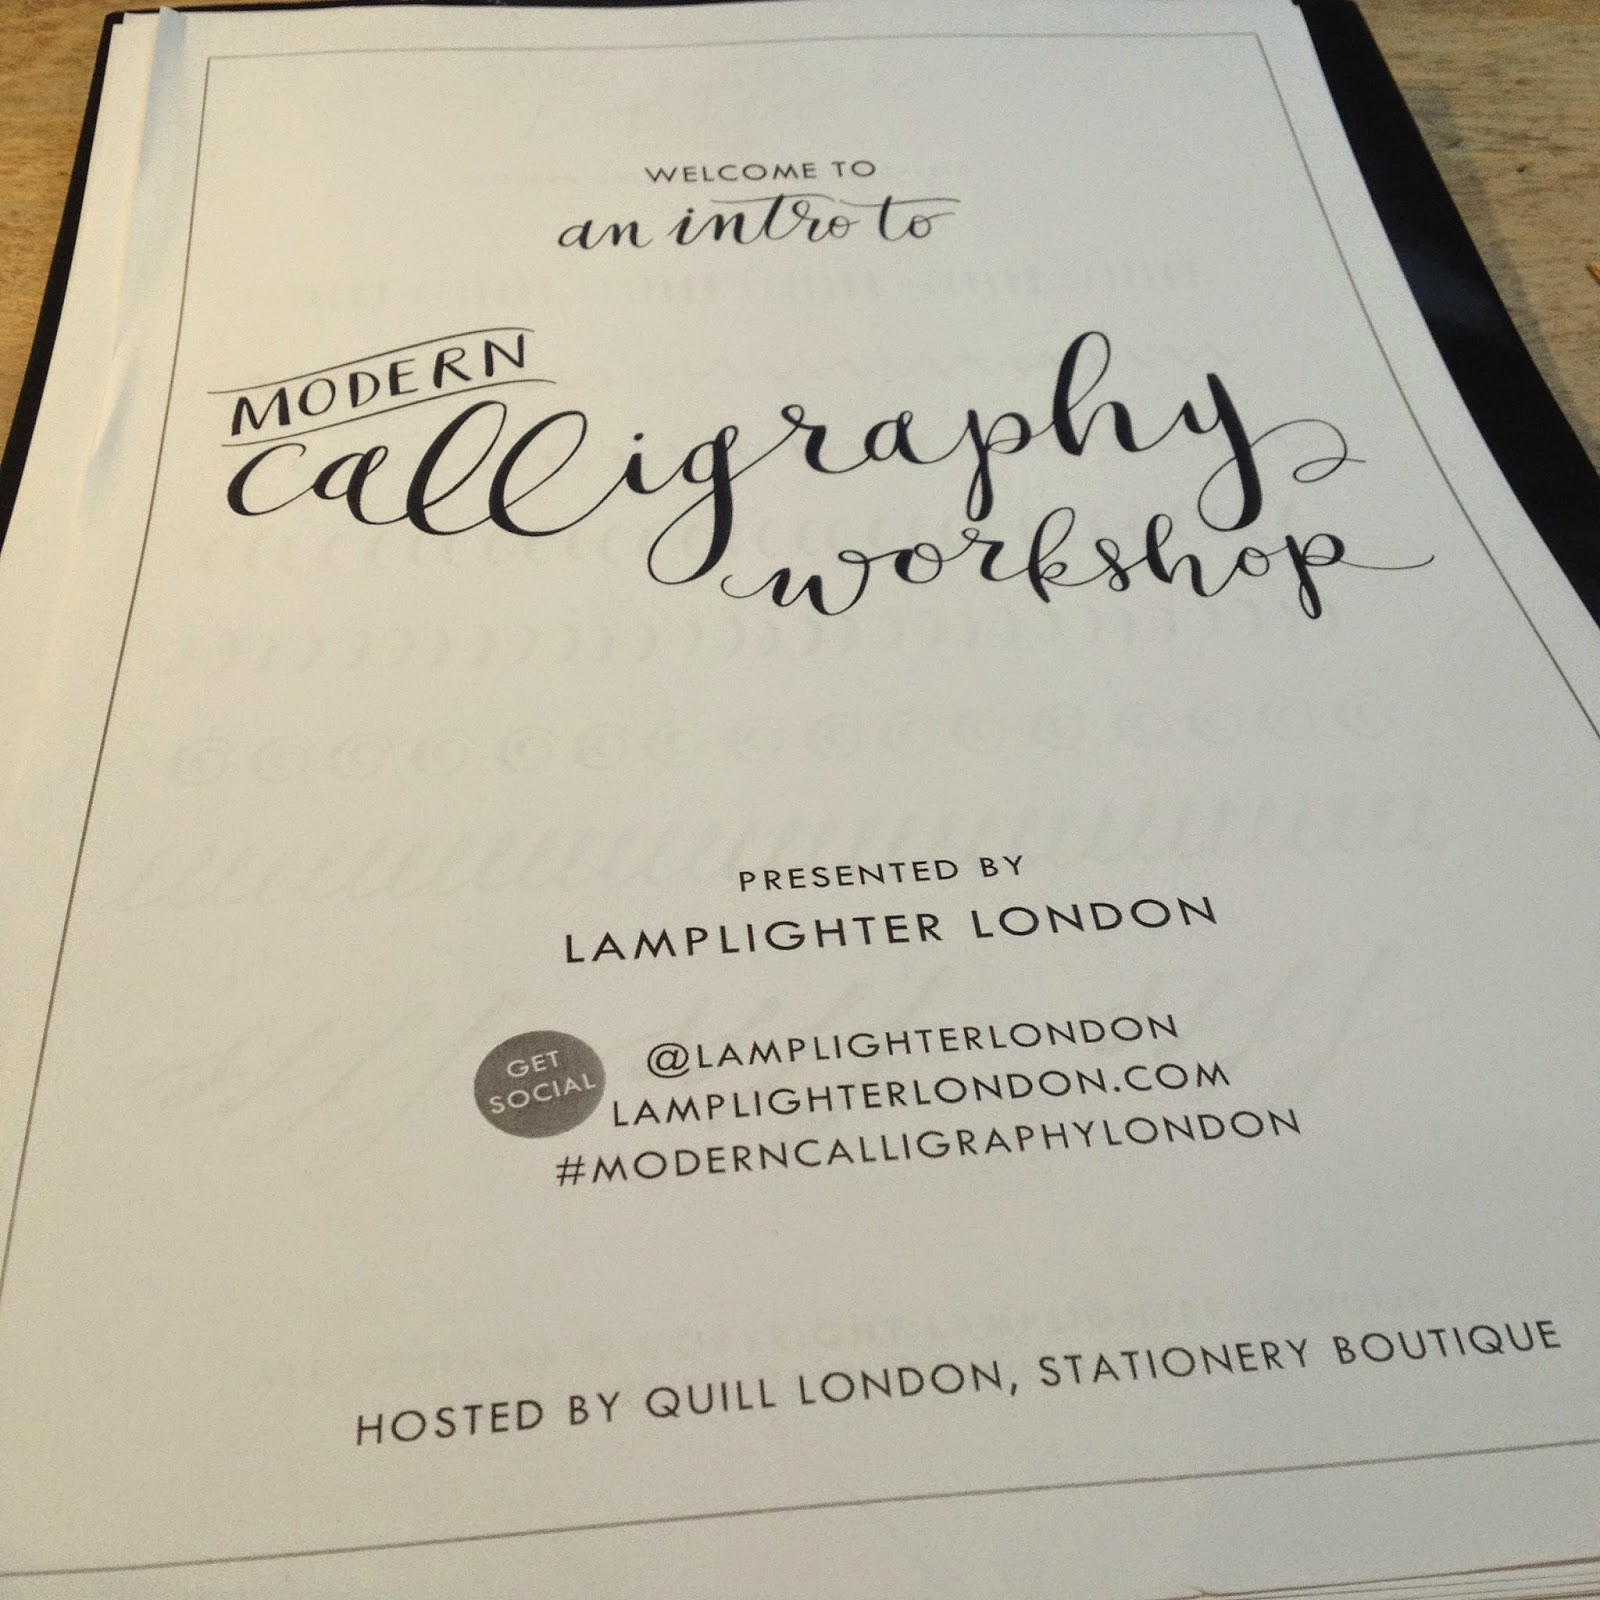 Quill London Mordern Calligraphy Workshop